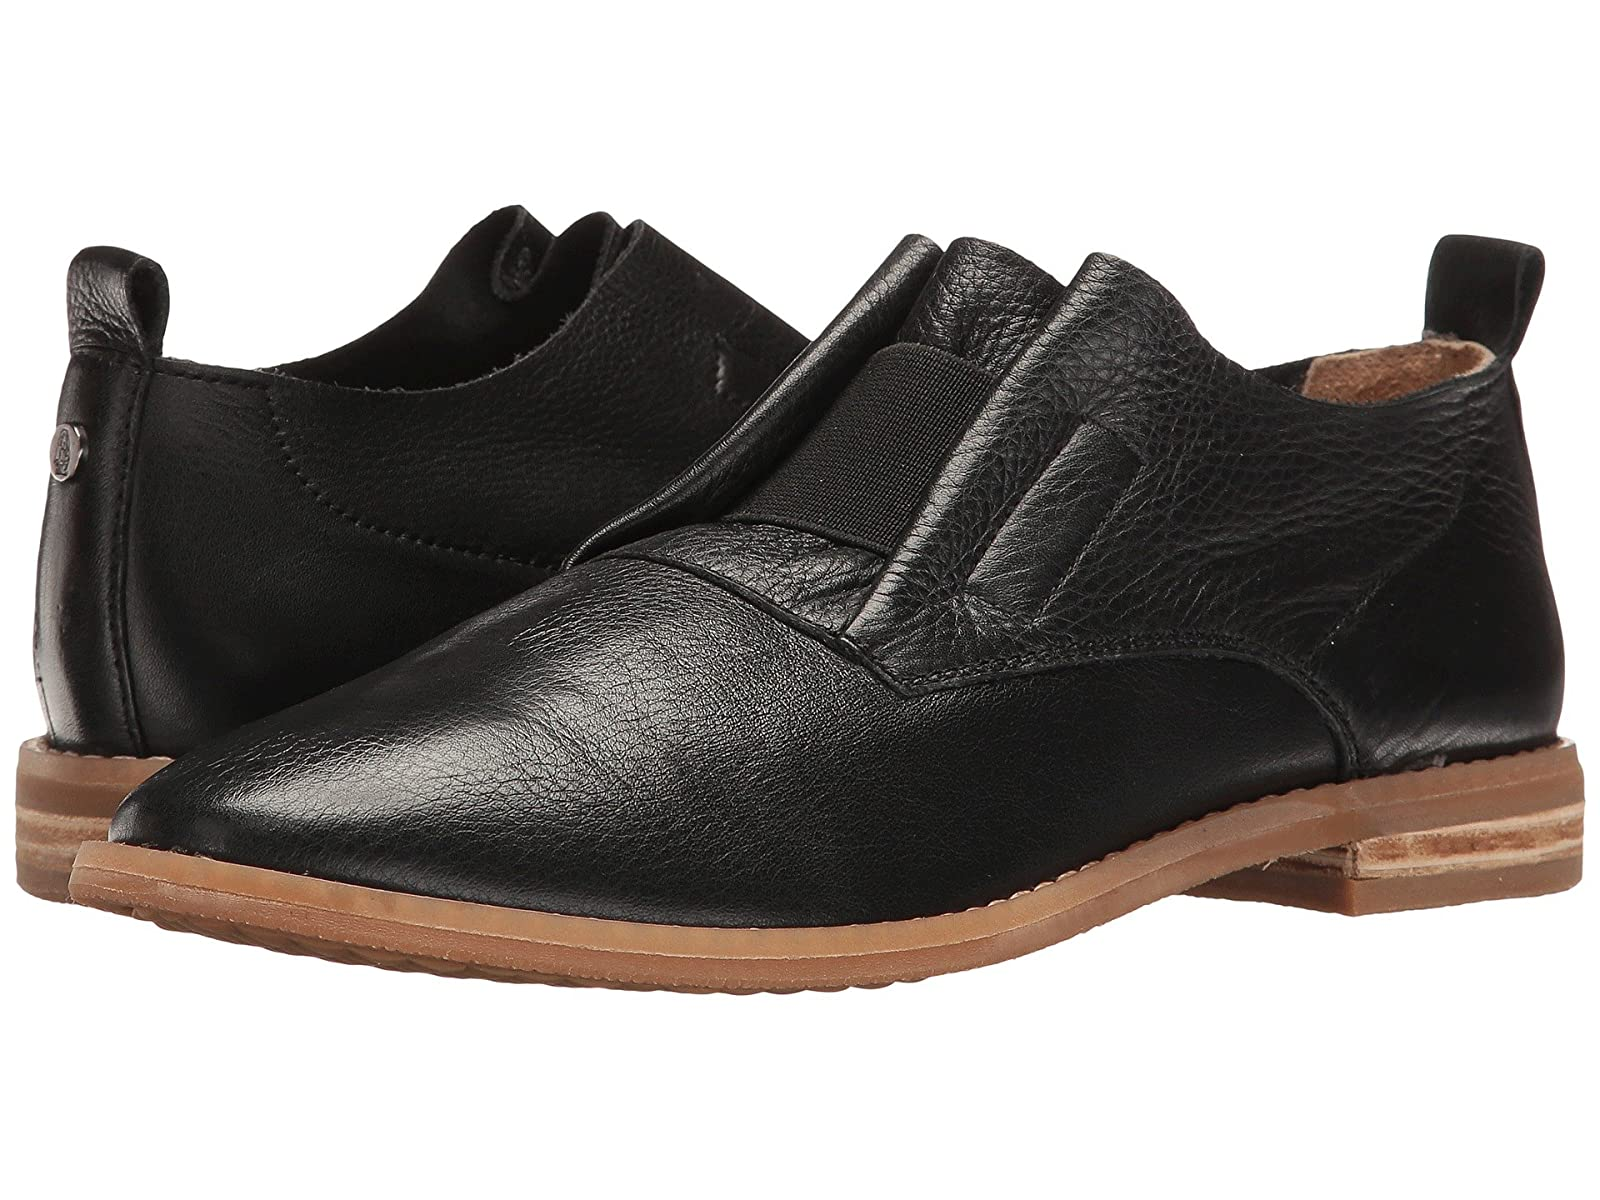 Hush Puppies Annerley CleverCheap and distinctive eye-catching shoes